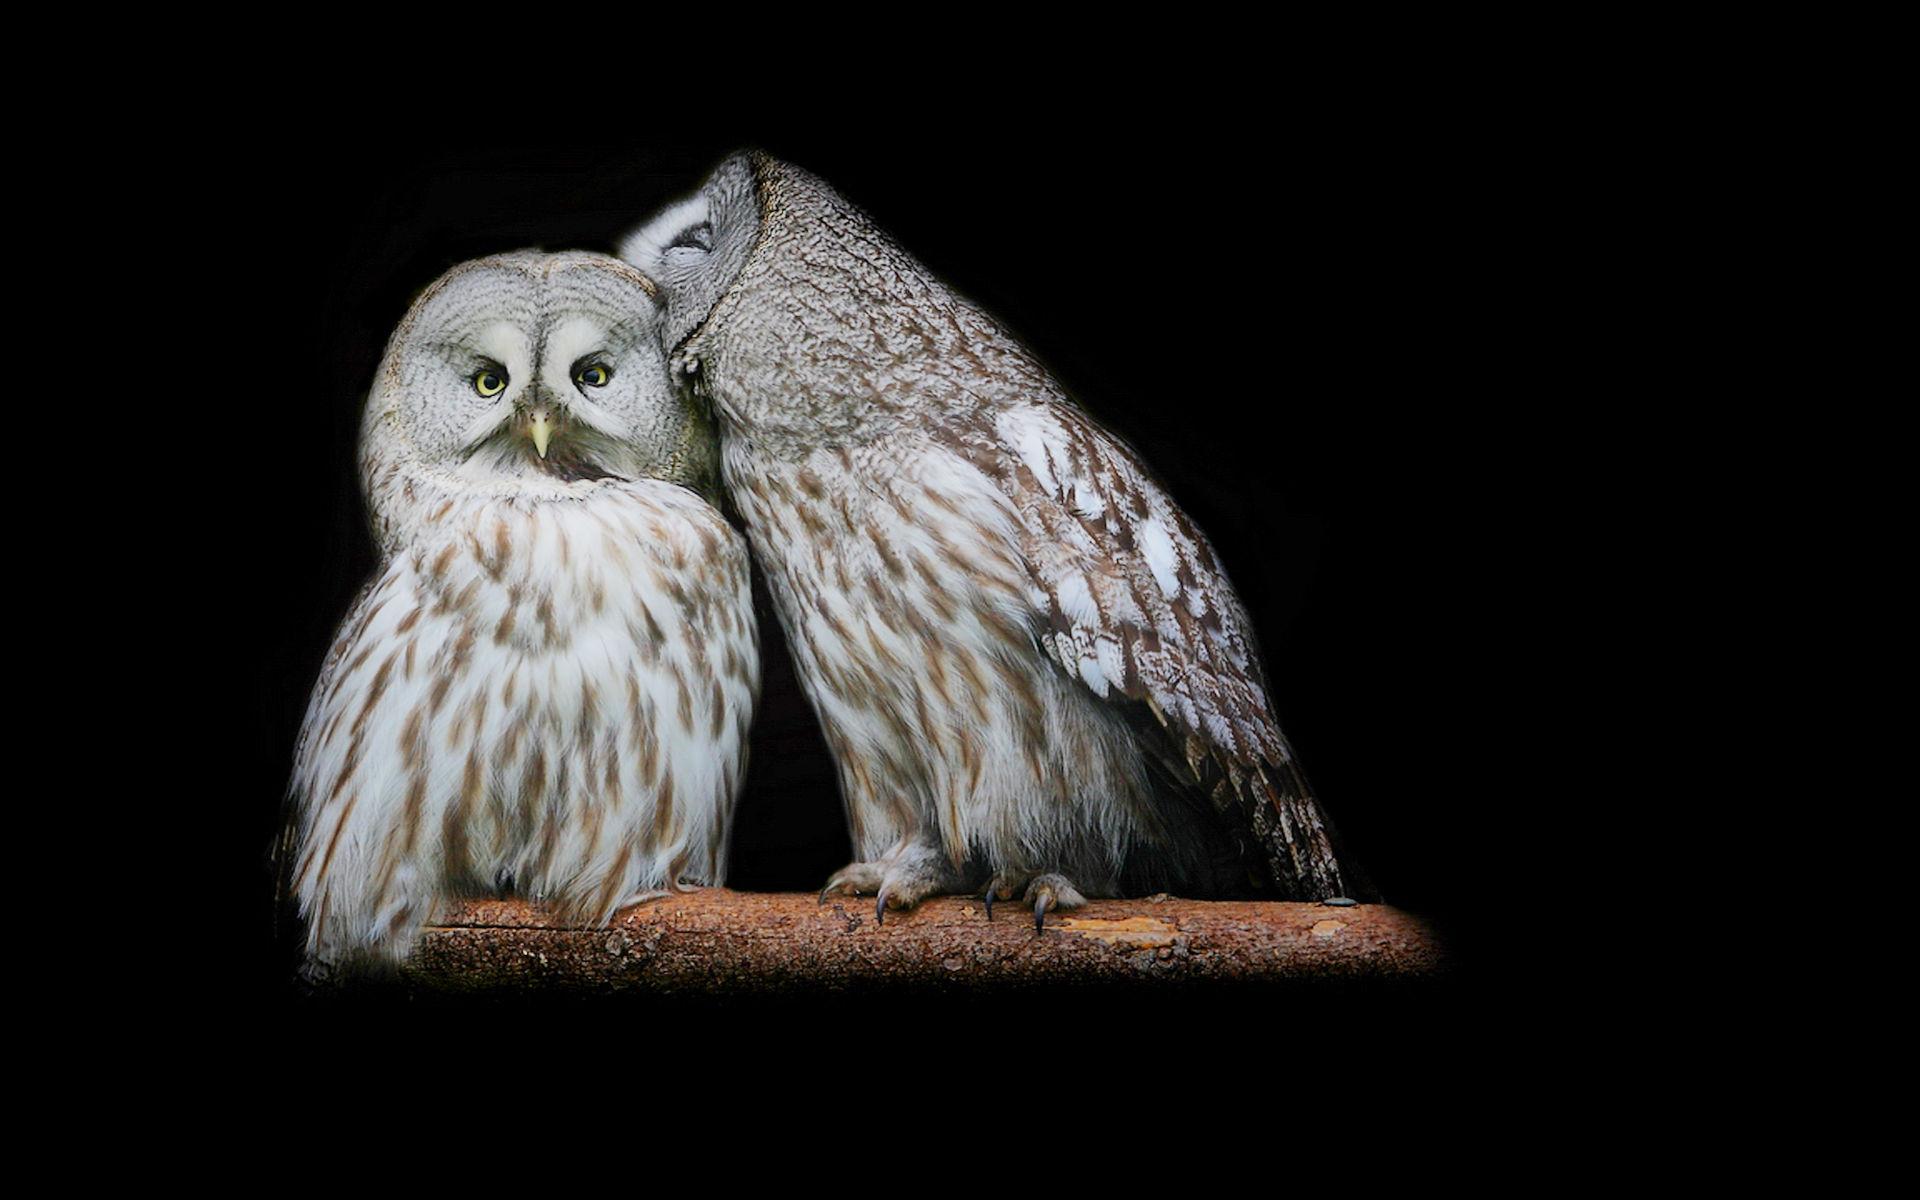 ipad inspired owl wallpapers background baltimore wallchan 1920x1200